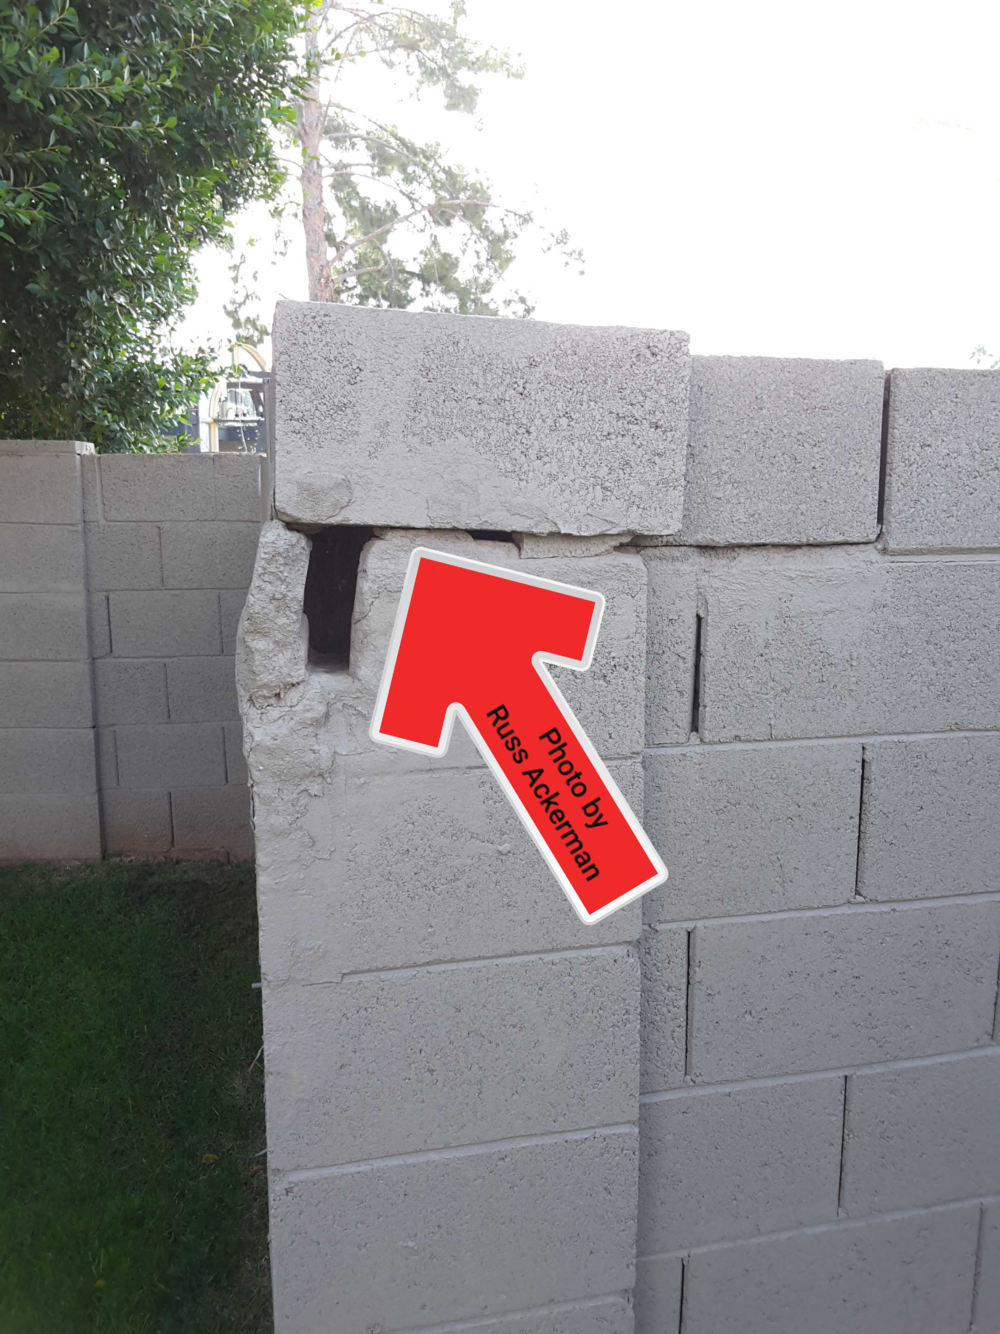 Loose blocks at walls are a safety hazard and the gaps and holes make a great place for lizards or scorpions to hang out in.